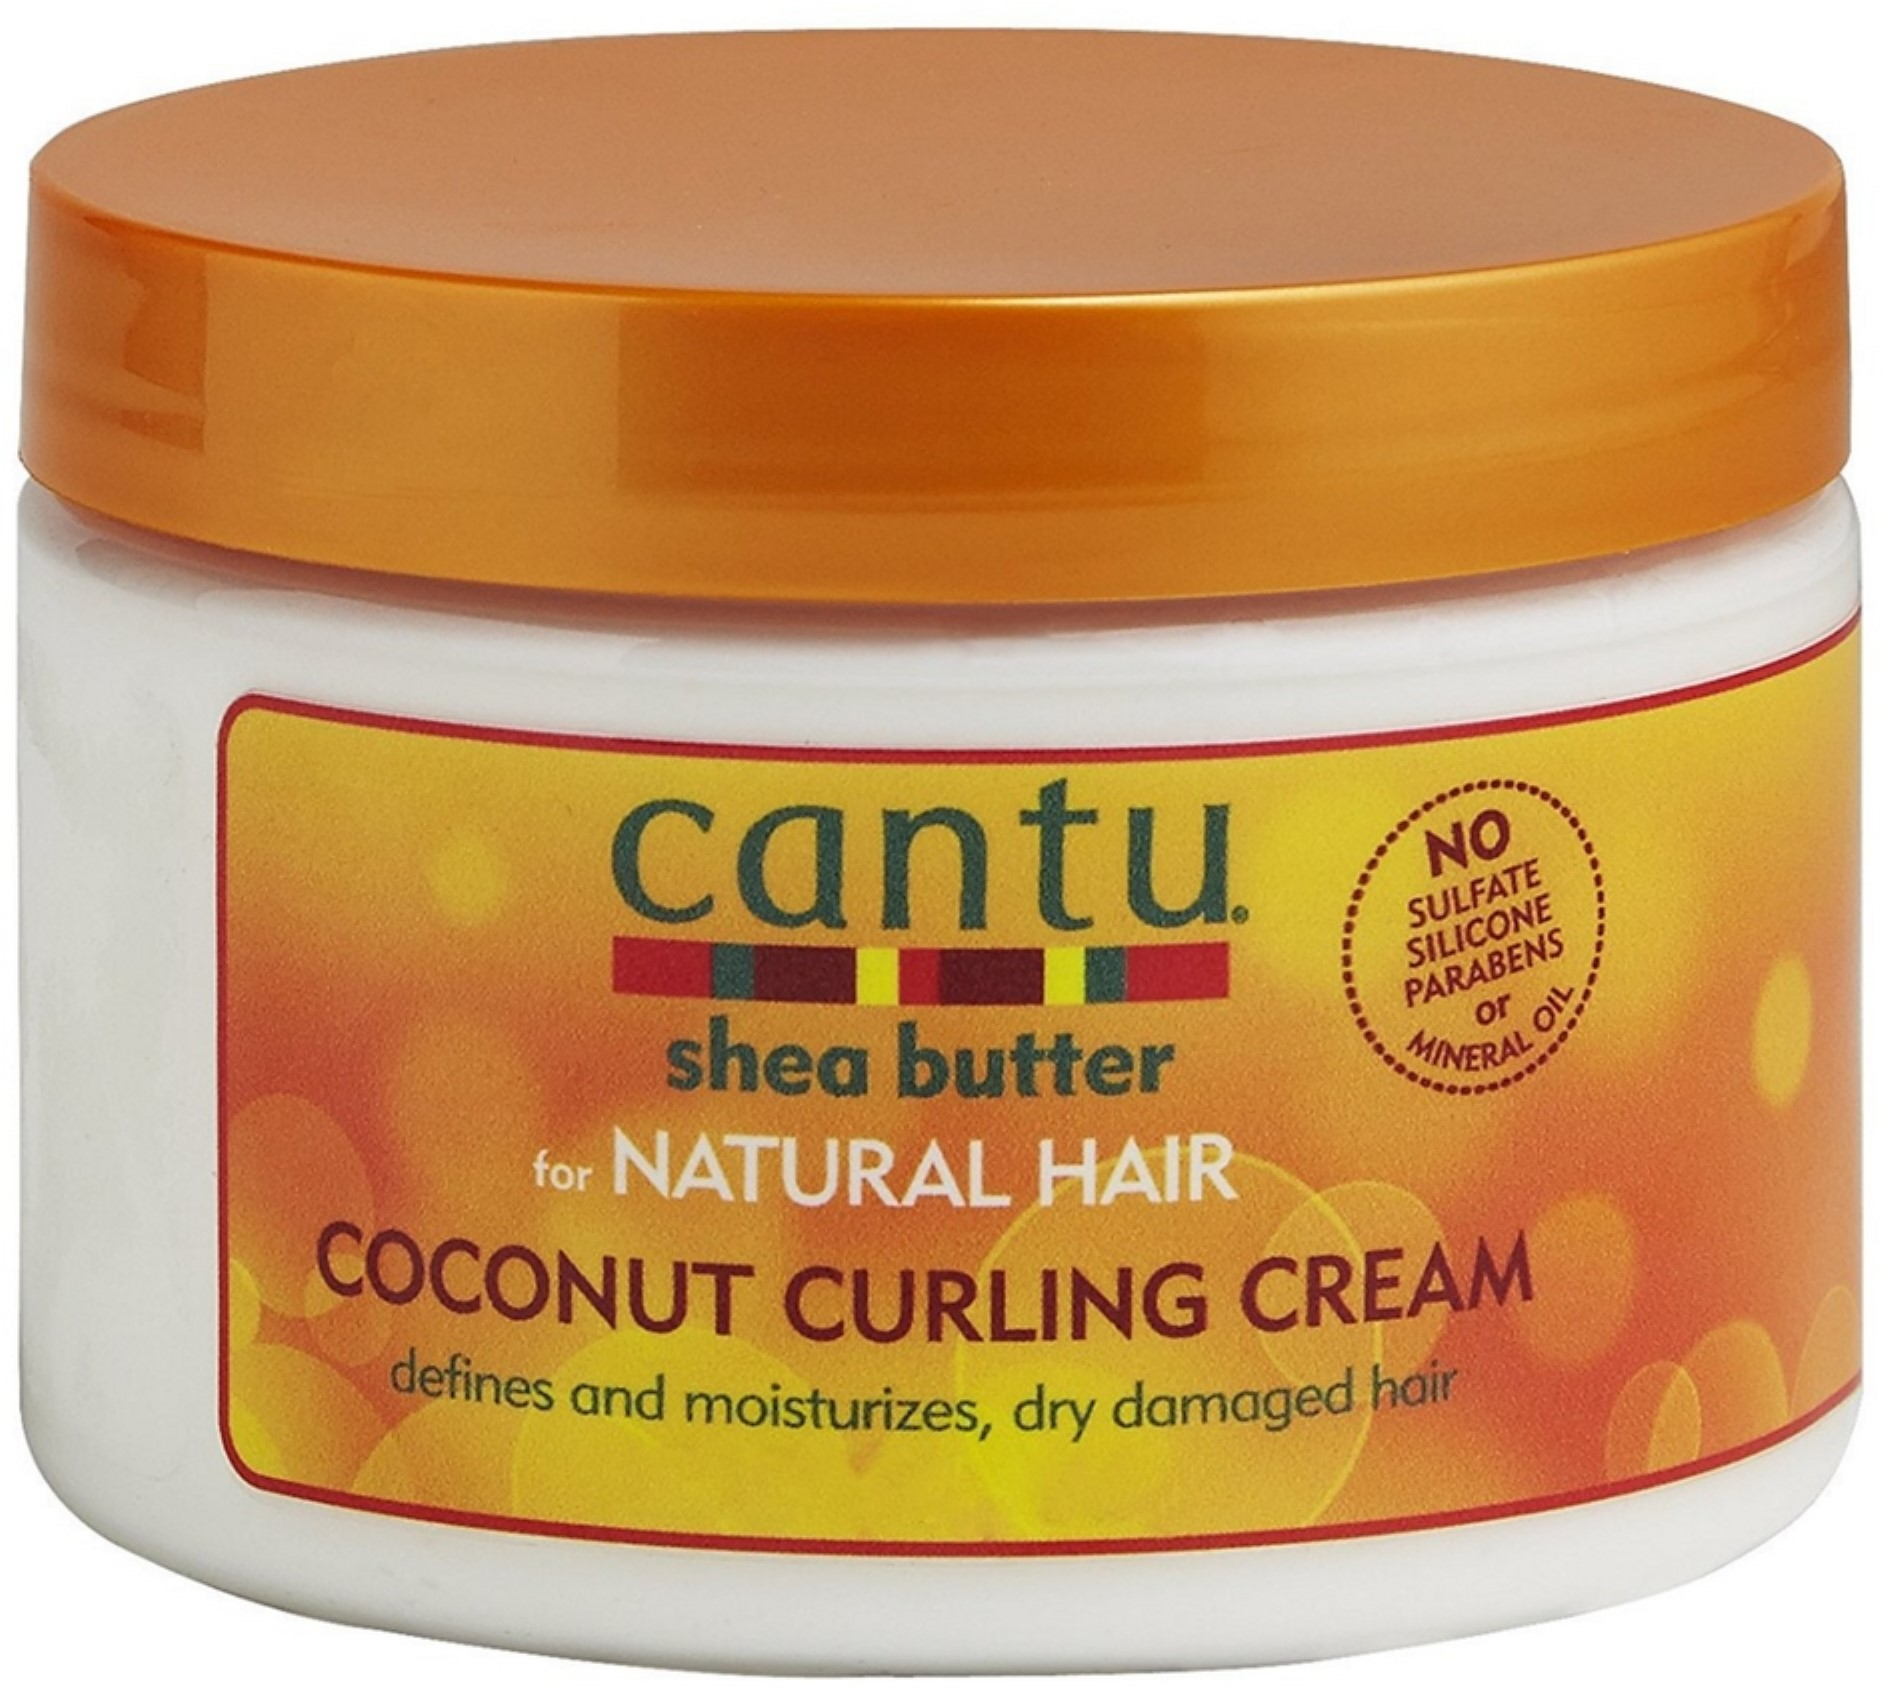 8 Of The Best Curly Hair Products Of 2020